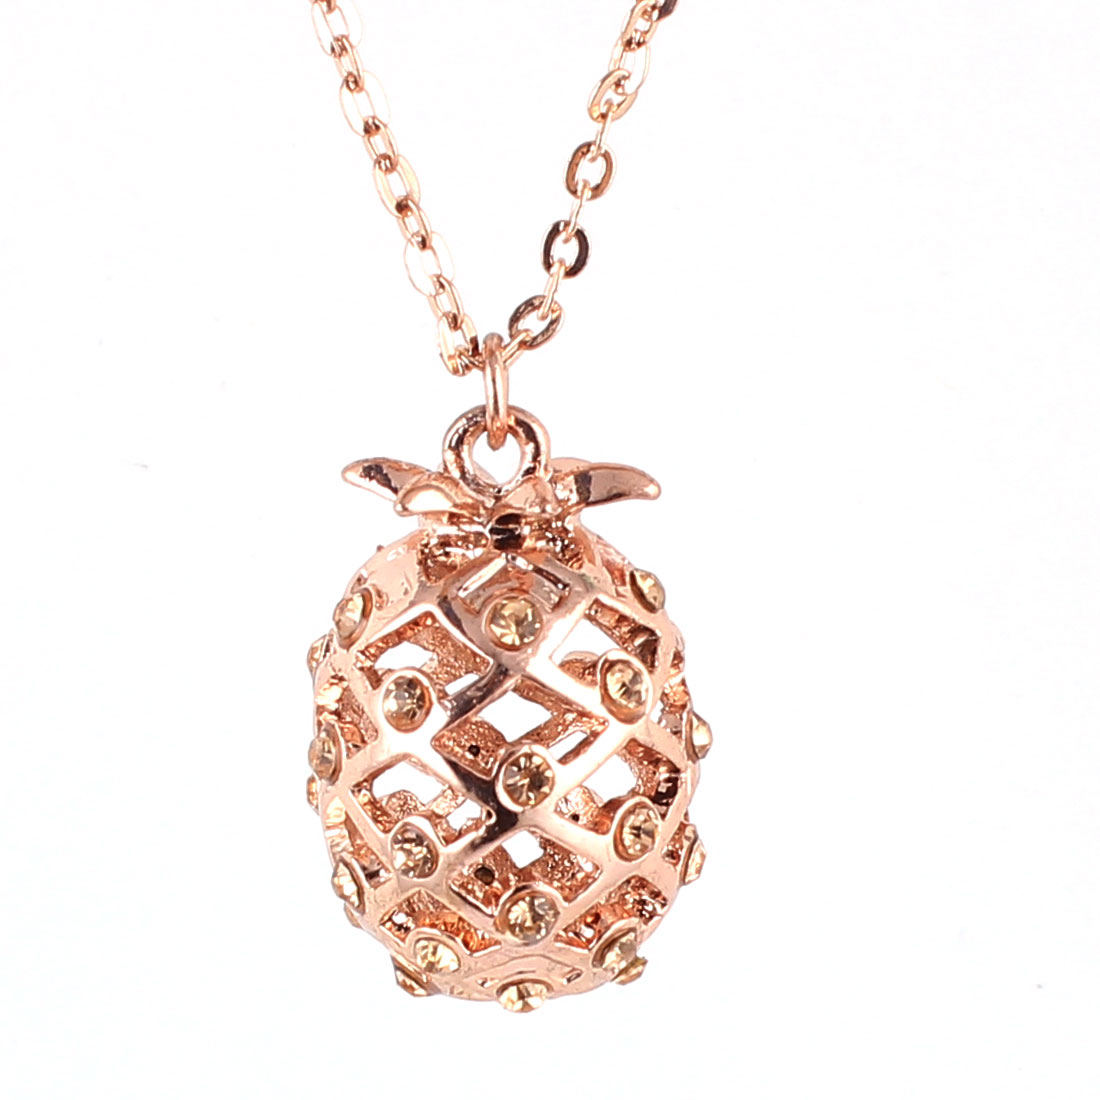 Ladies Women Plastic Rhinestones Decor Hollow Out Pineapple Design Pendant Metal Lobster Buckle Slim Chain Necklace Neckwear Copper Tone